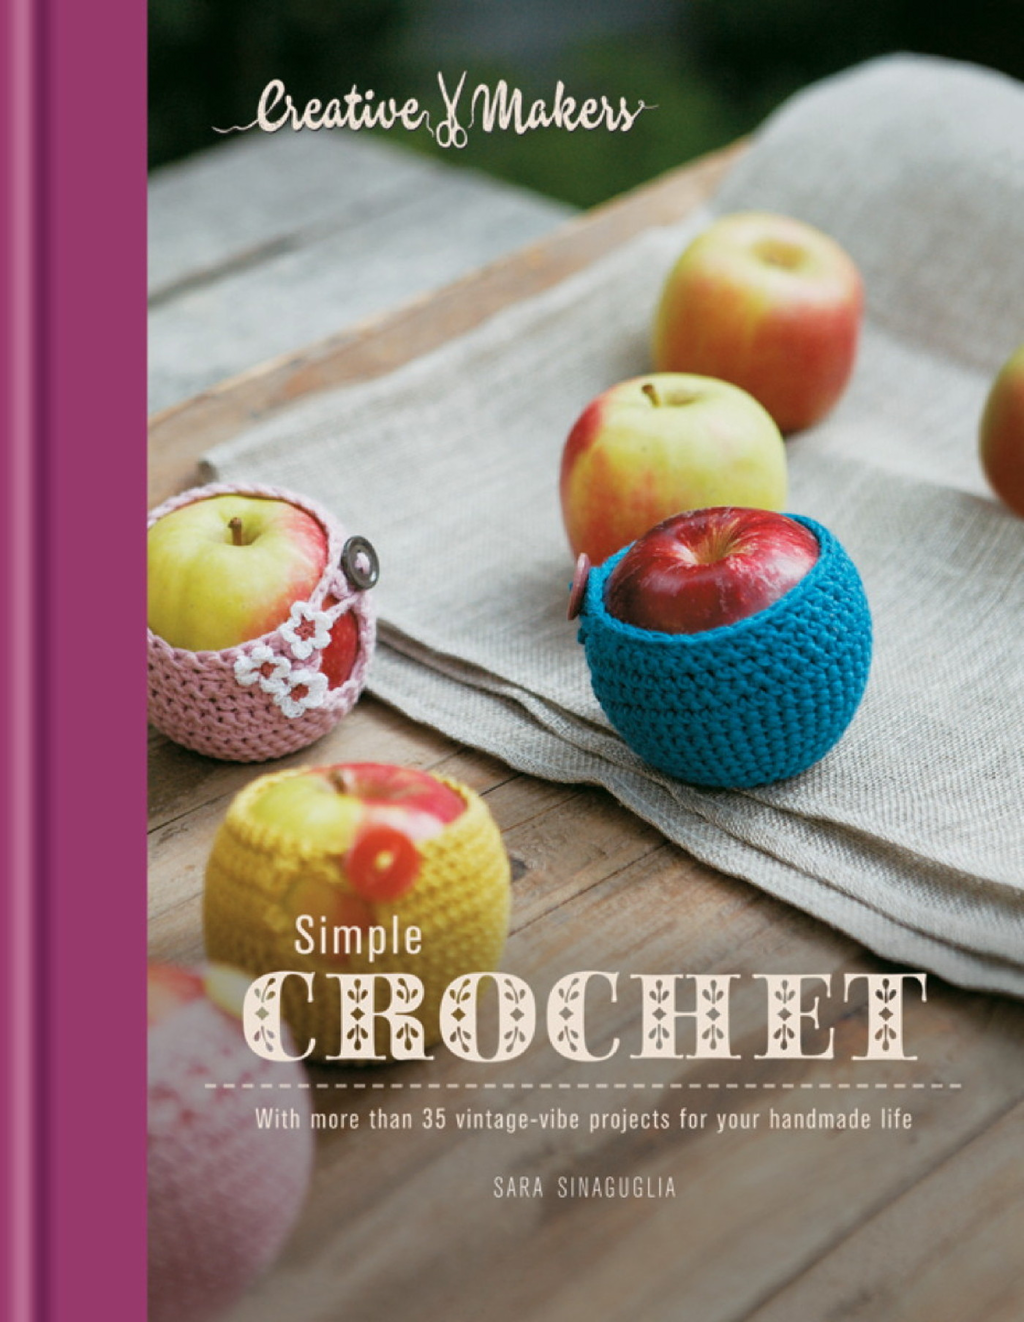 Creative Makers: Simple Crochet With 35 vintage-vibe projects for your handmade life